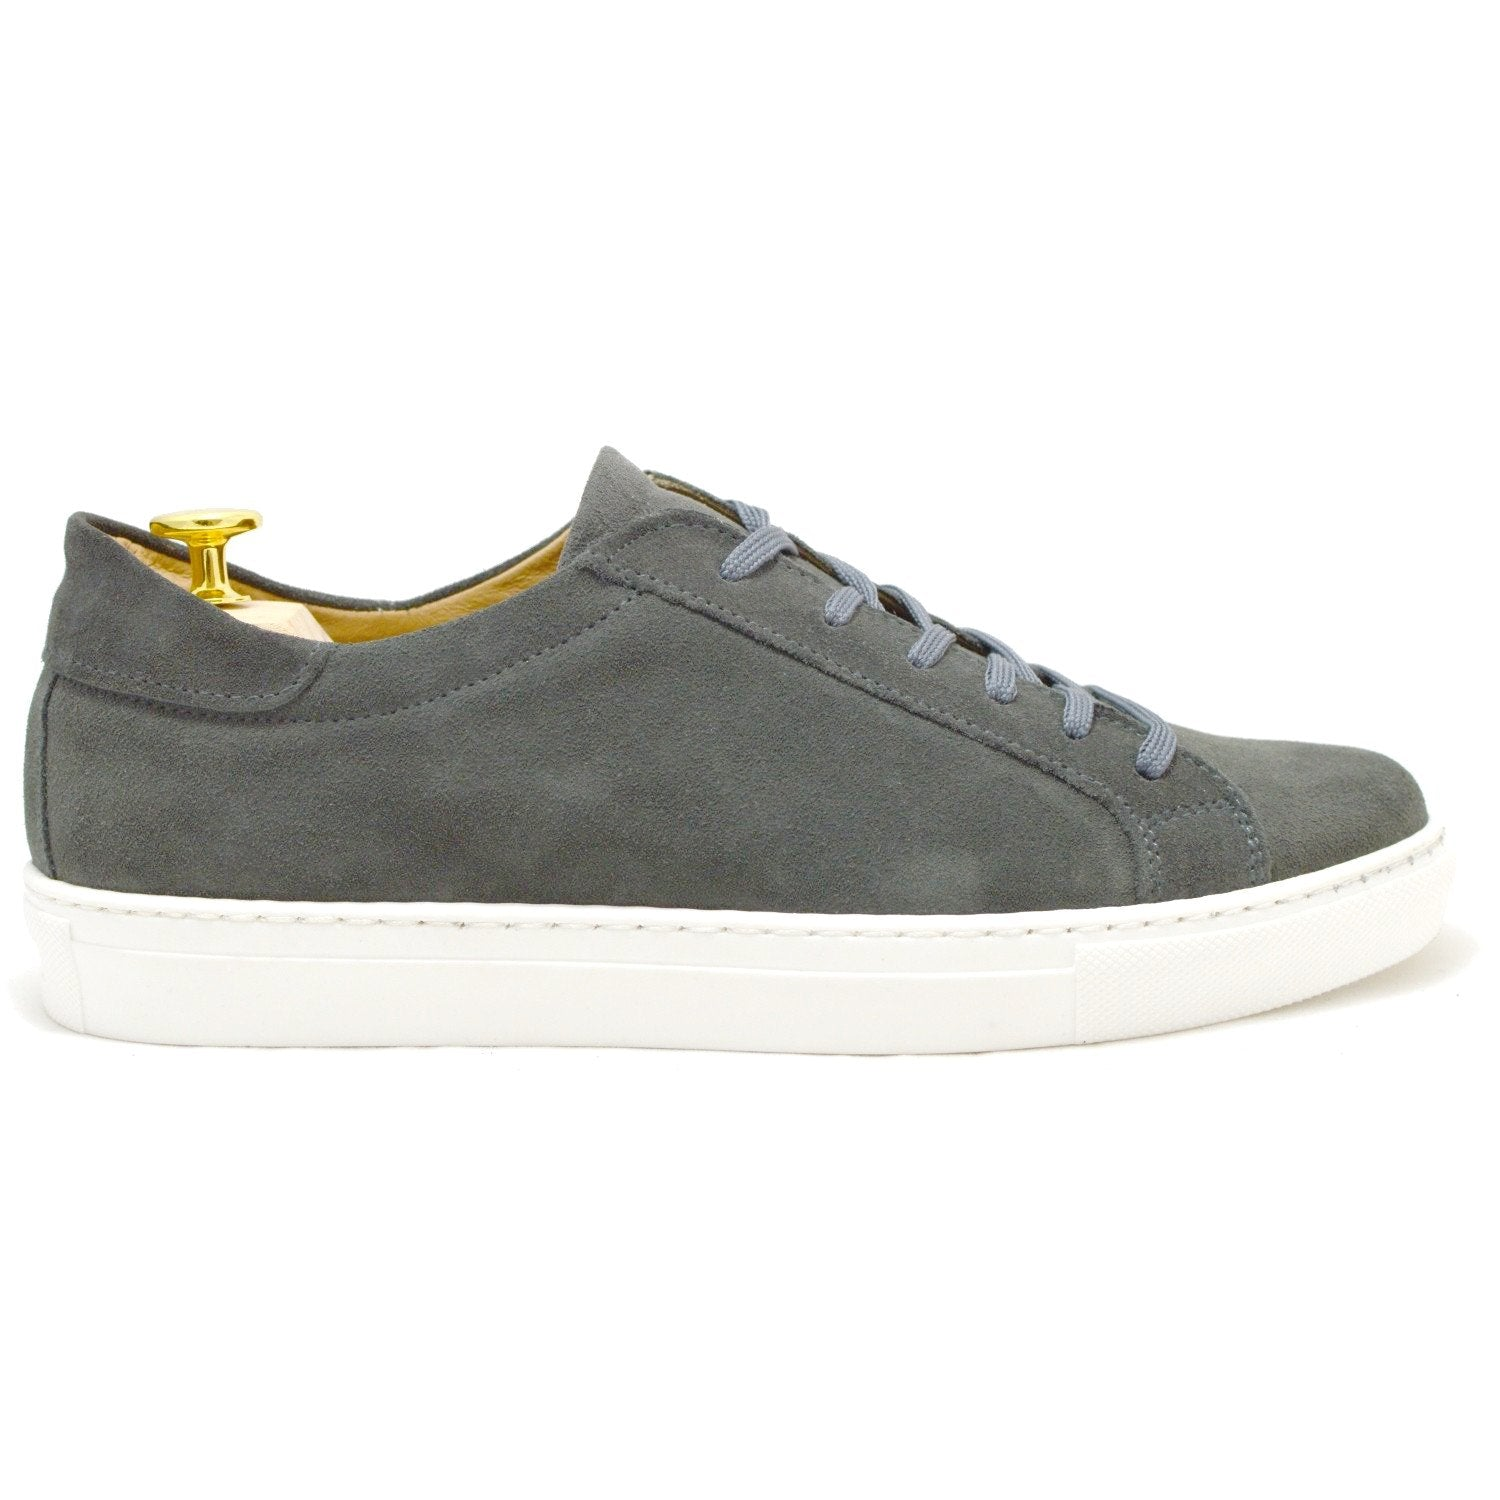 Italian gray suede sneakers for men with white rubber sole